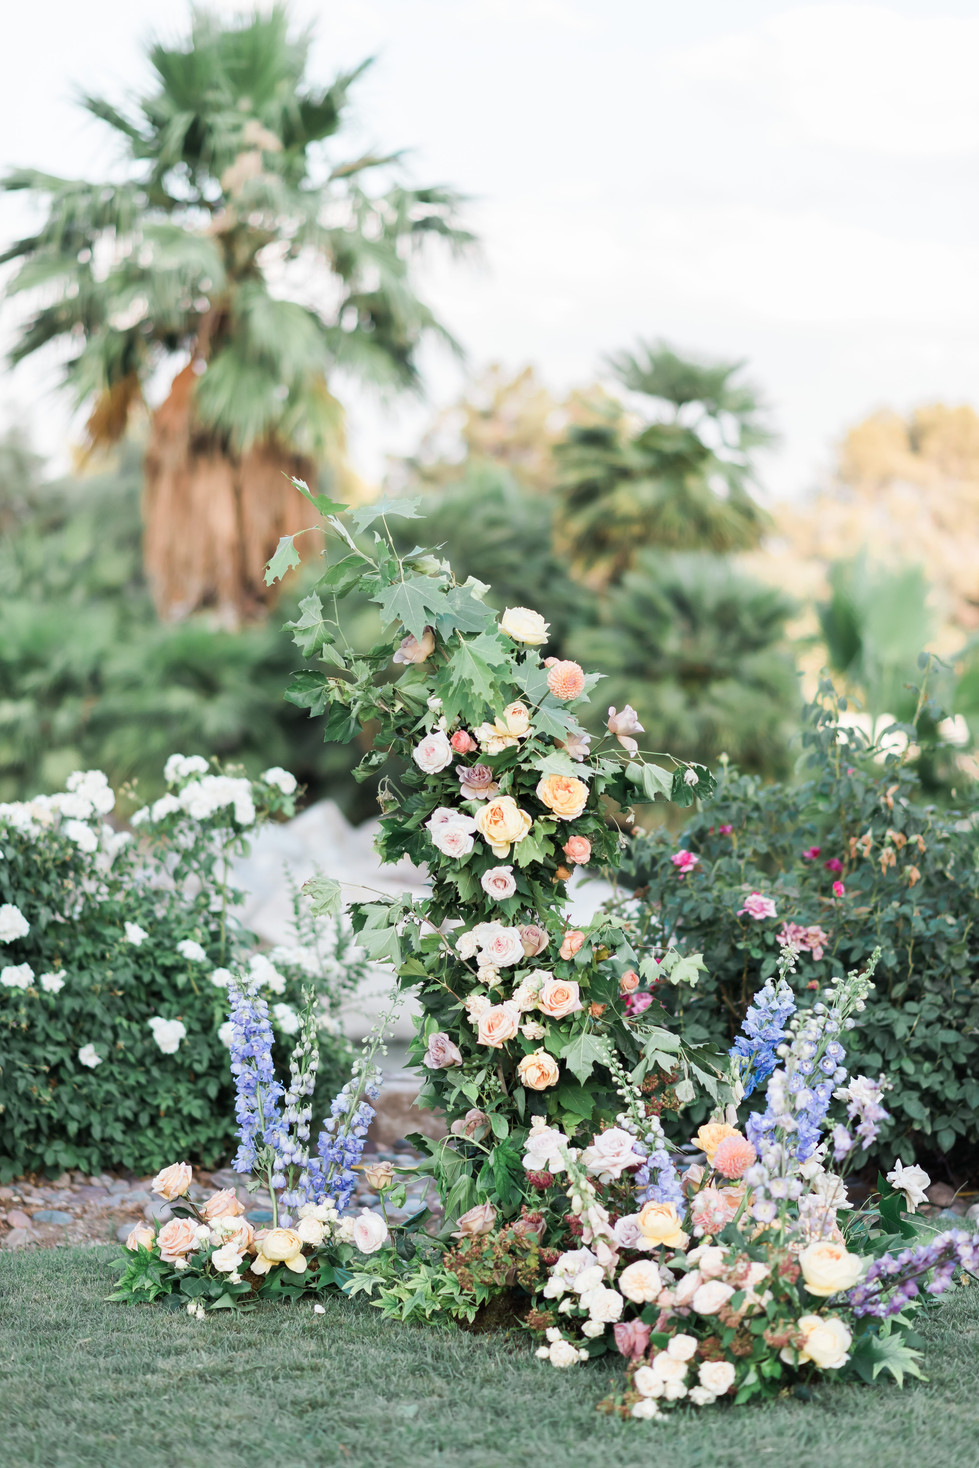 Deconstructed garden arch with roses, delphinium, foxglove, and dahlias. Photo: Jodi Anne